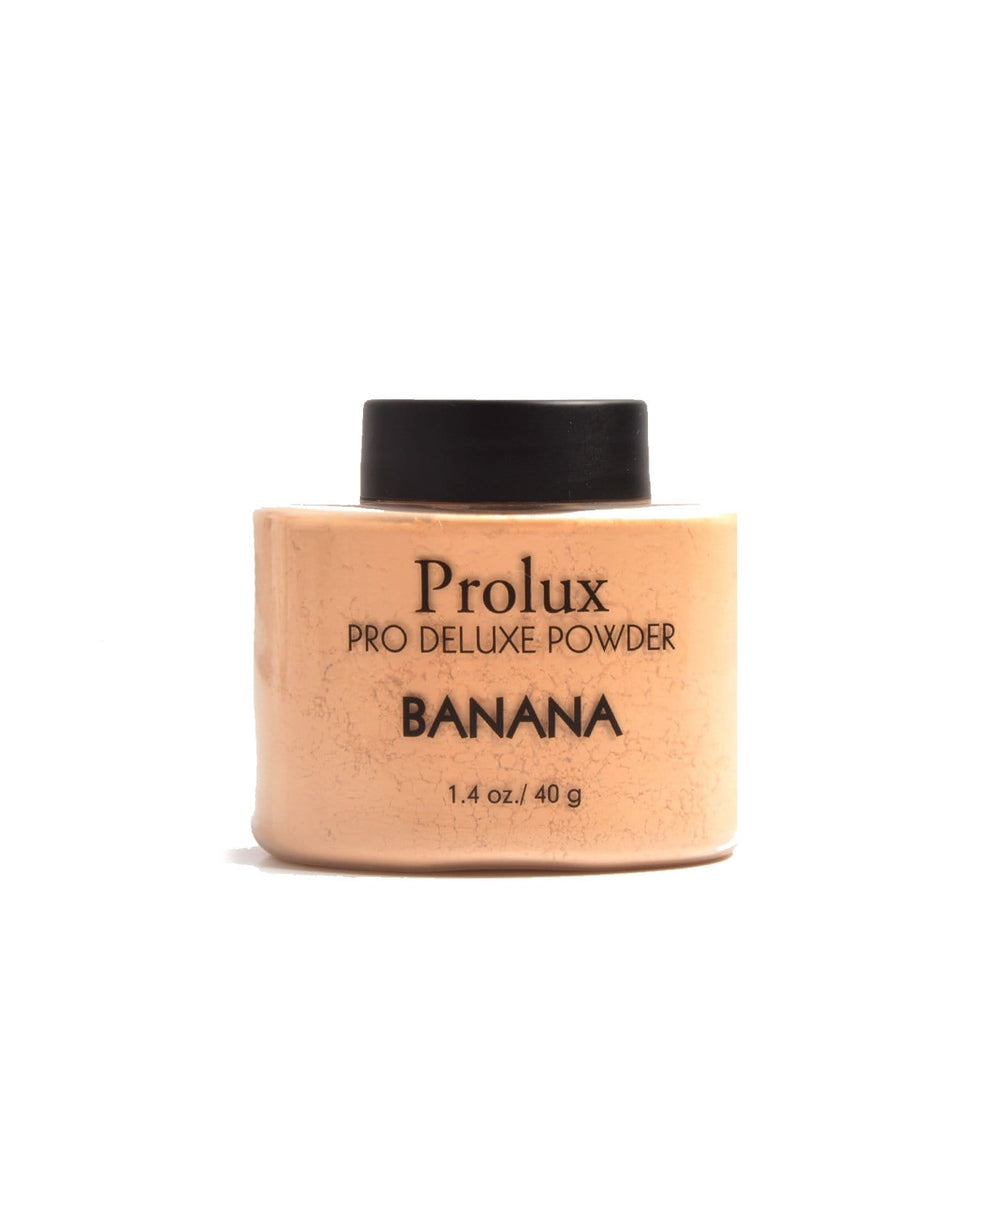 Prolux Pro Deluxe Banana Powder